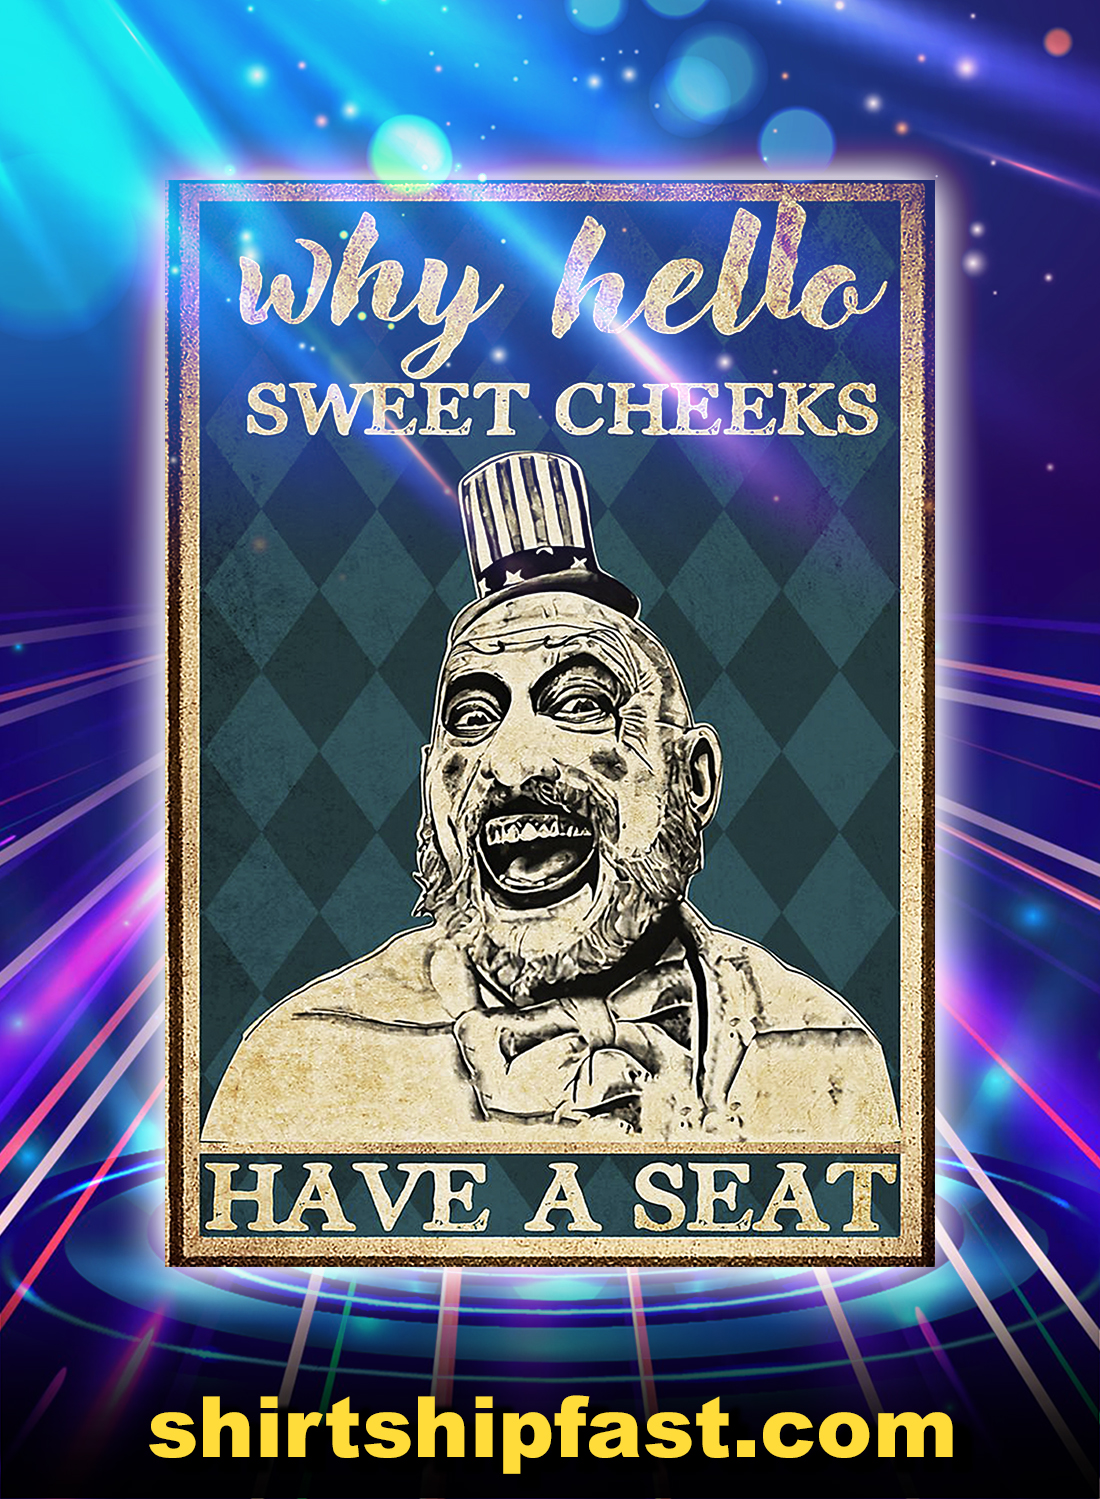 Captain spaulding why hello sweet cheeks have a seat poster - A4